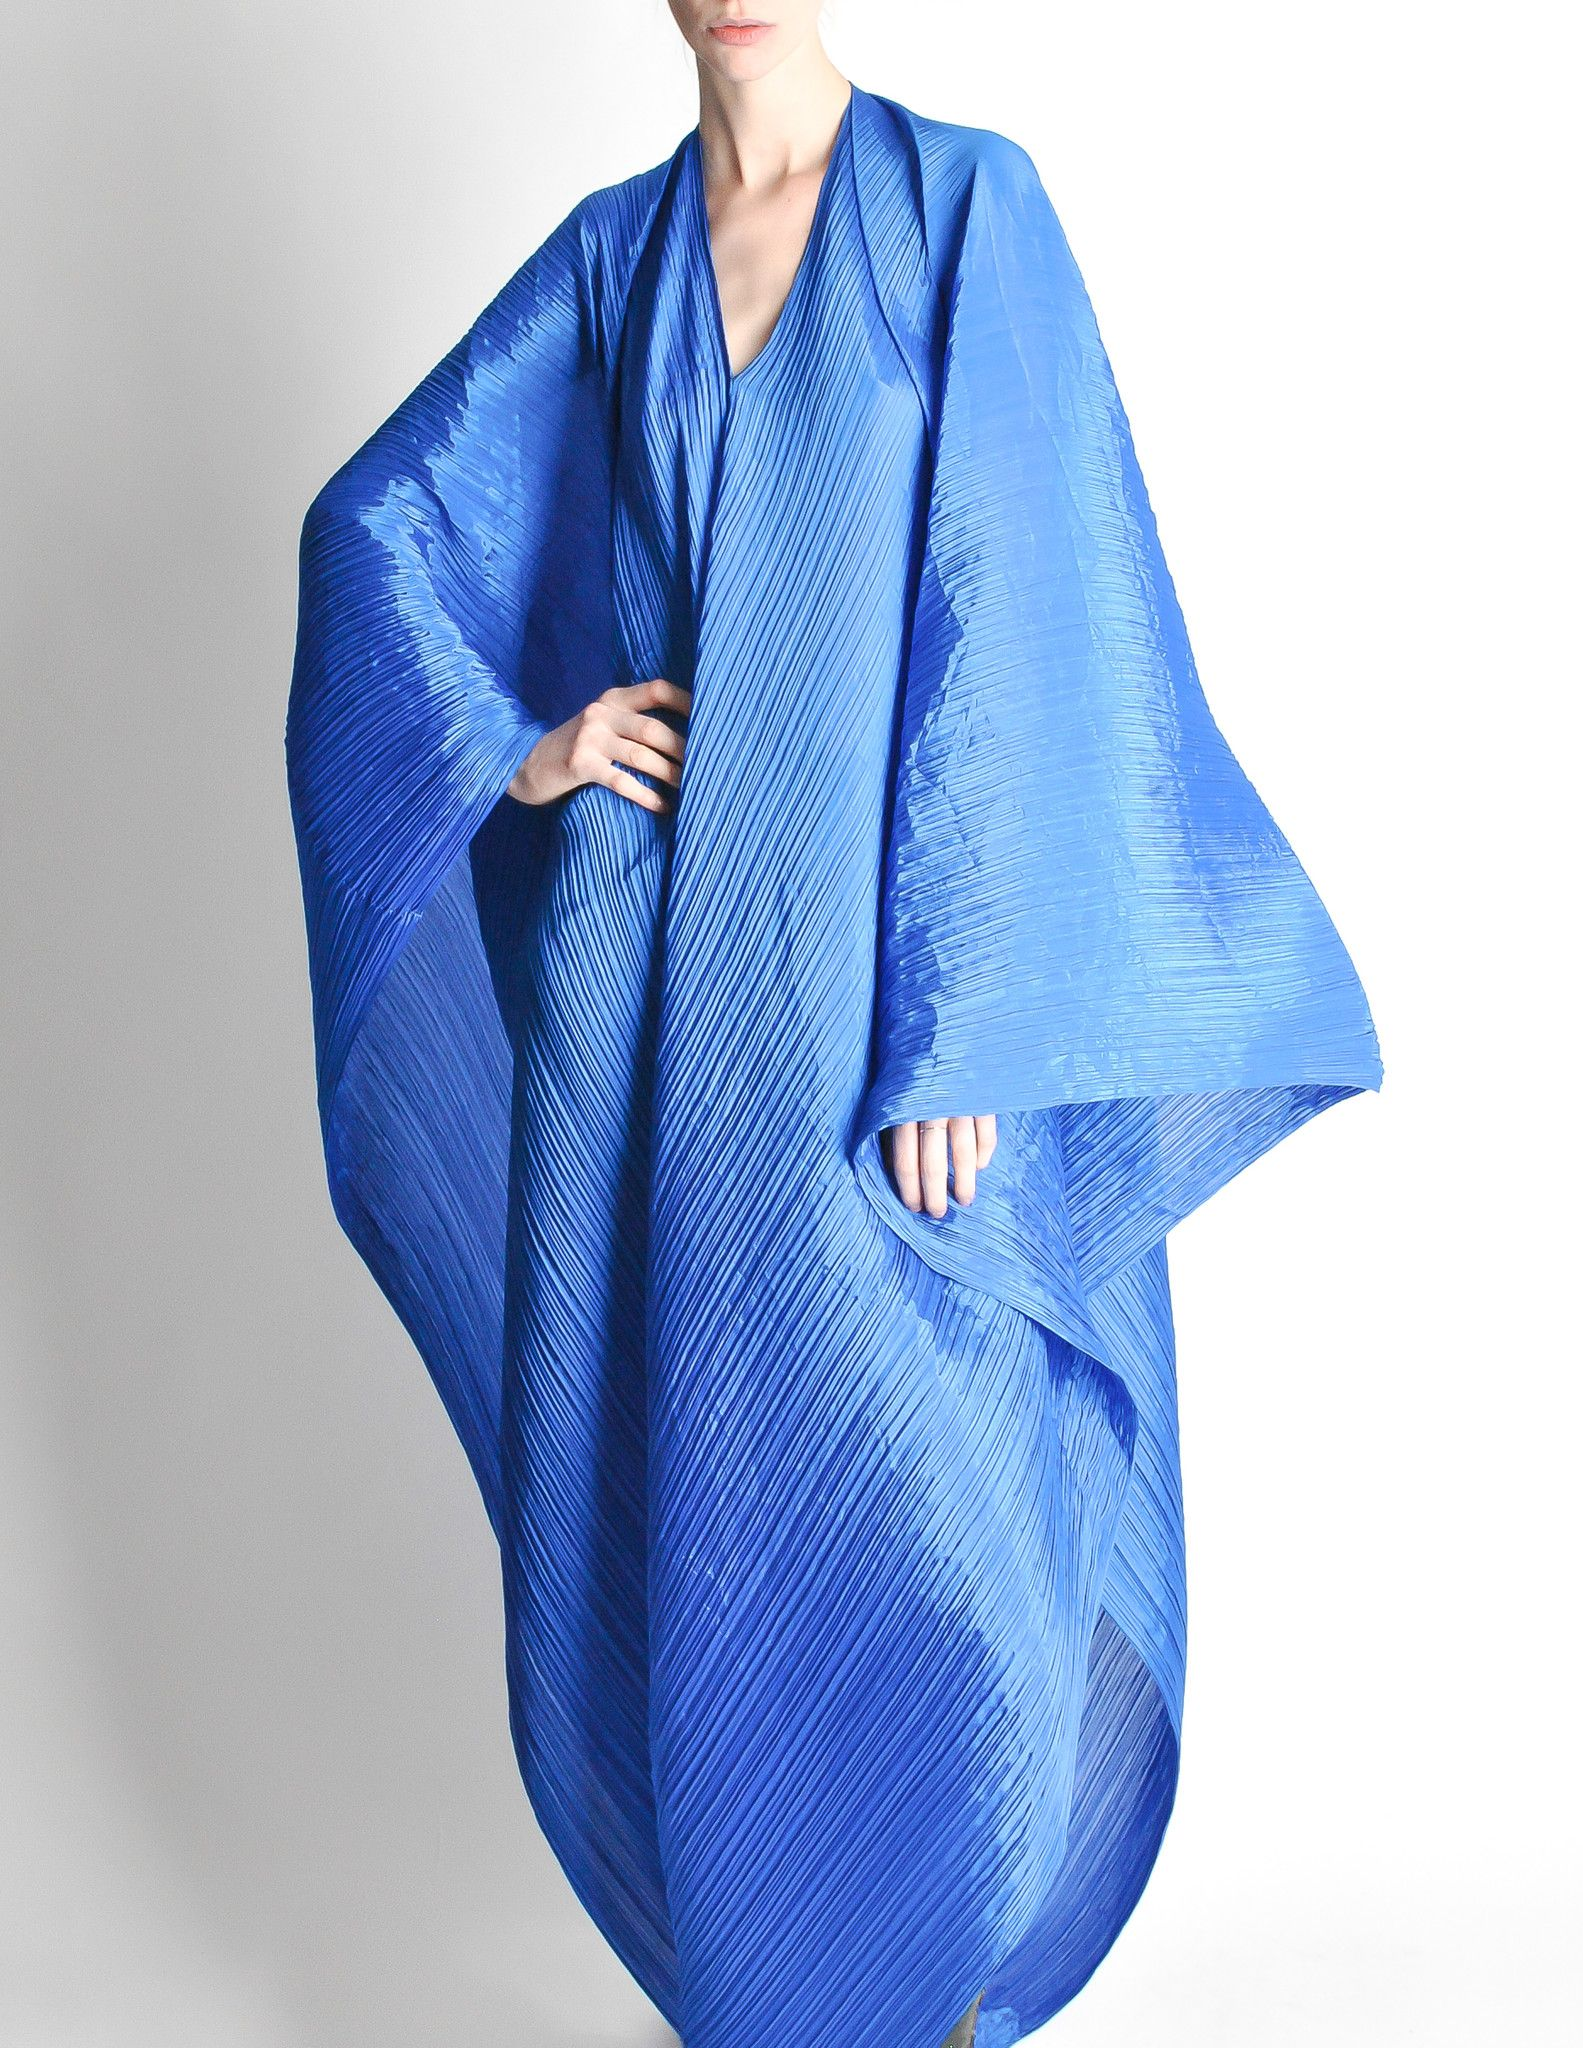 4e203d75f96e Jaw dropping vintage Pleats Please piece by Issey Miyake. The possibilities  are endless with this piece. An electric cobalt blue micro pleated fashion